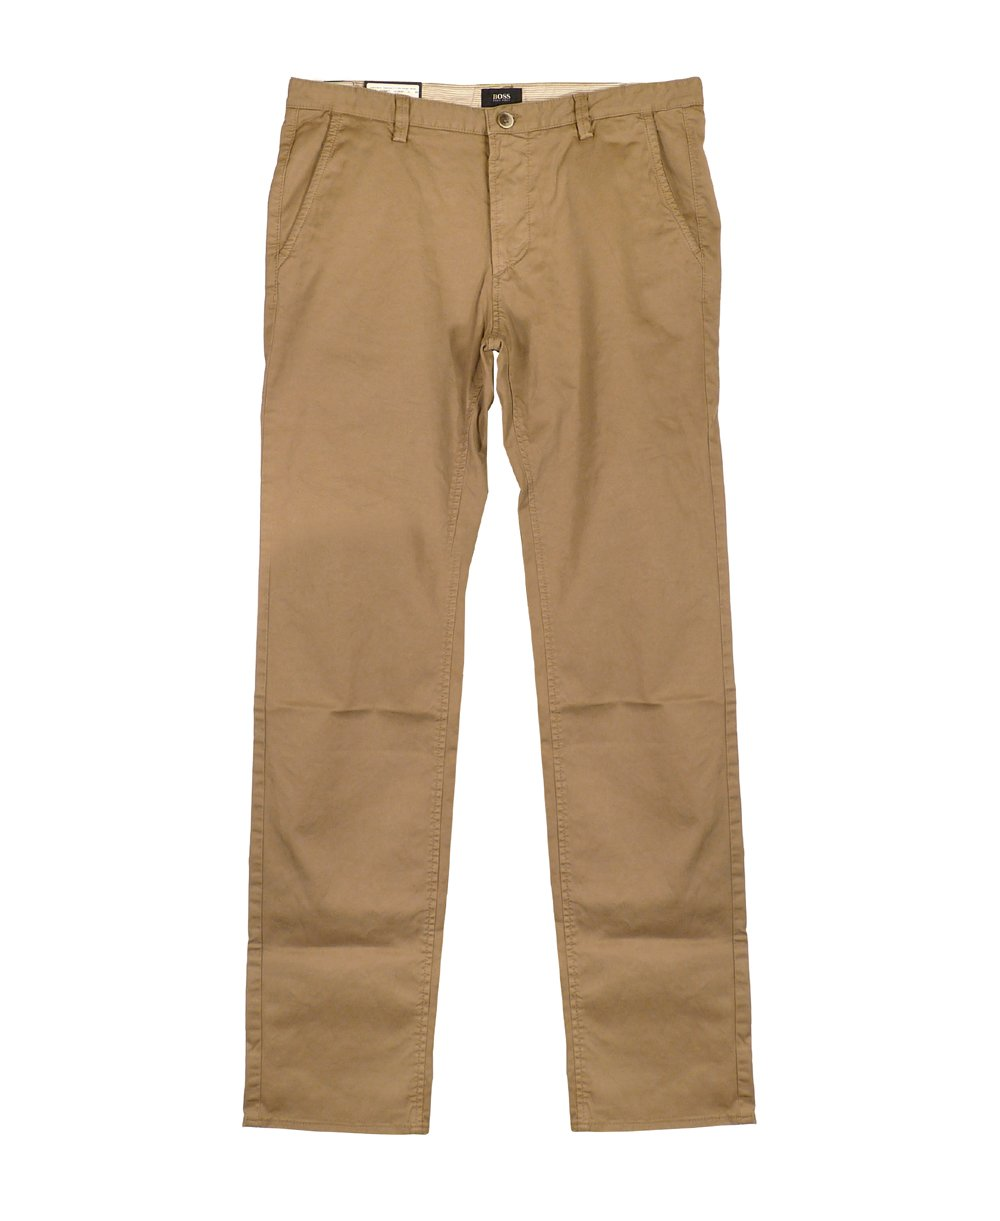 hugo boss beige rice chino slim fit trousers hugo boss from jonathan trumbull uk. Black Bedroom Furniture Sets. Home Design Ideas